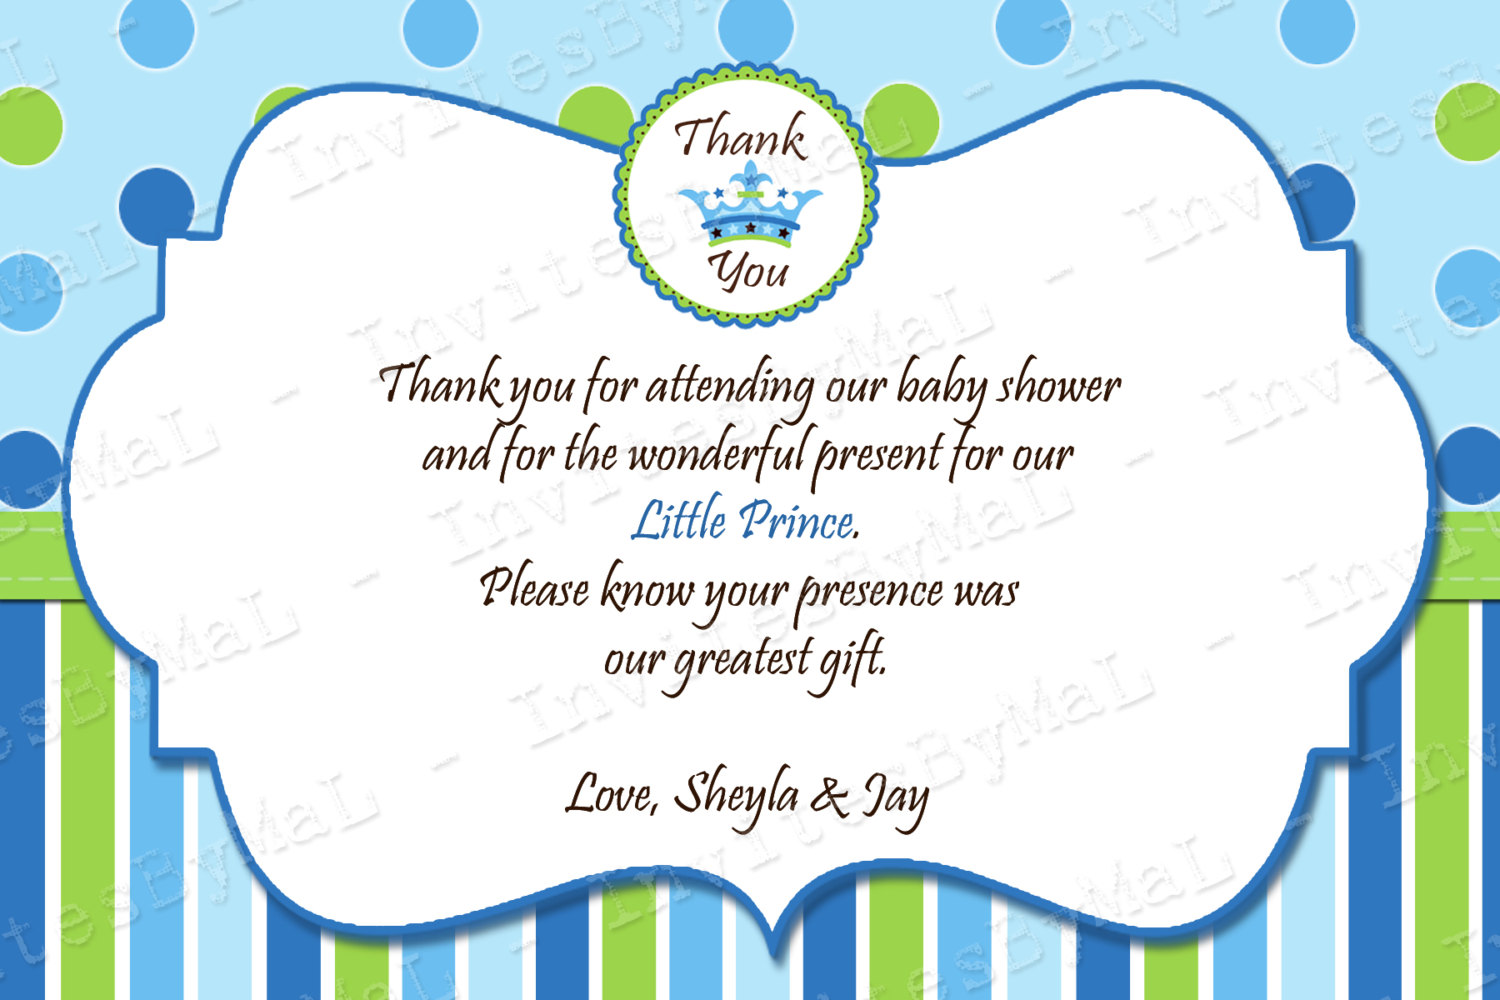 Full Size of Baby Shower:72+ Rousing Baby Shower Thank You Cards Picture Ideas Baby Shower Thank You Cards Baby Shower Keepsakes Baby Shower Venues Near Me Baby Shower Venues London Baby Shower Announcements Baby Shower Cookies Baby Shower Baskets